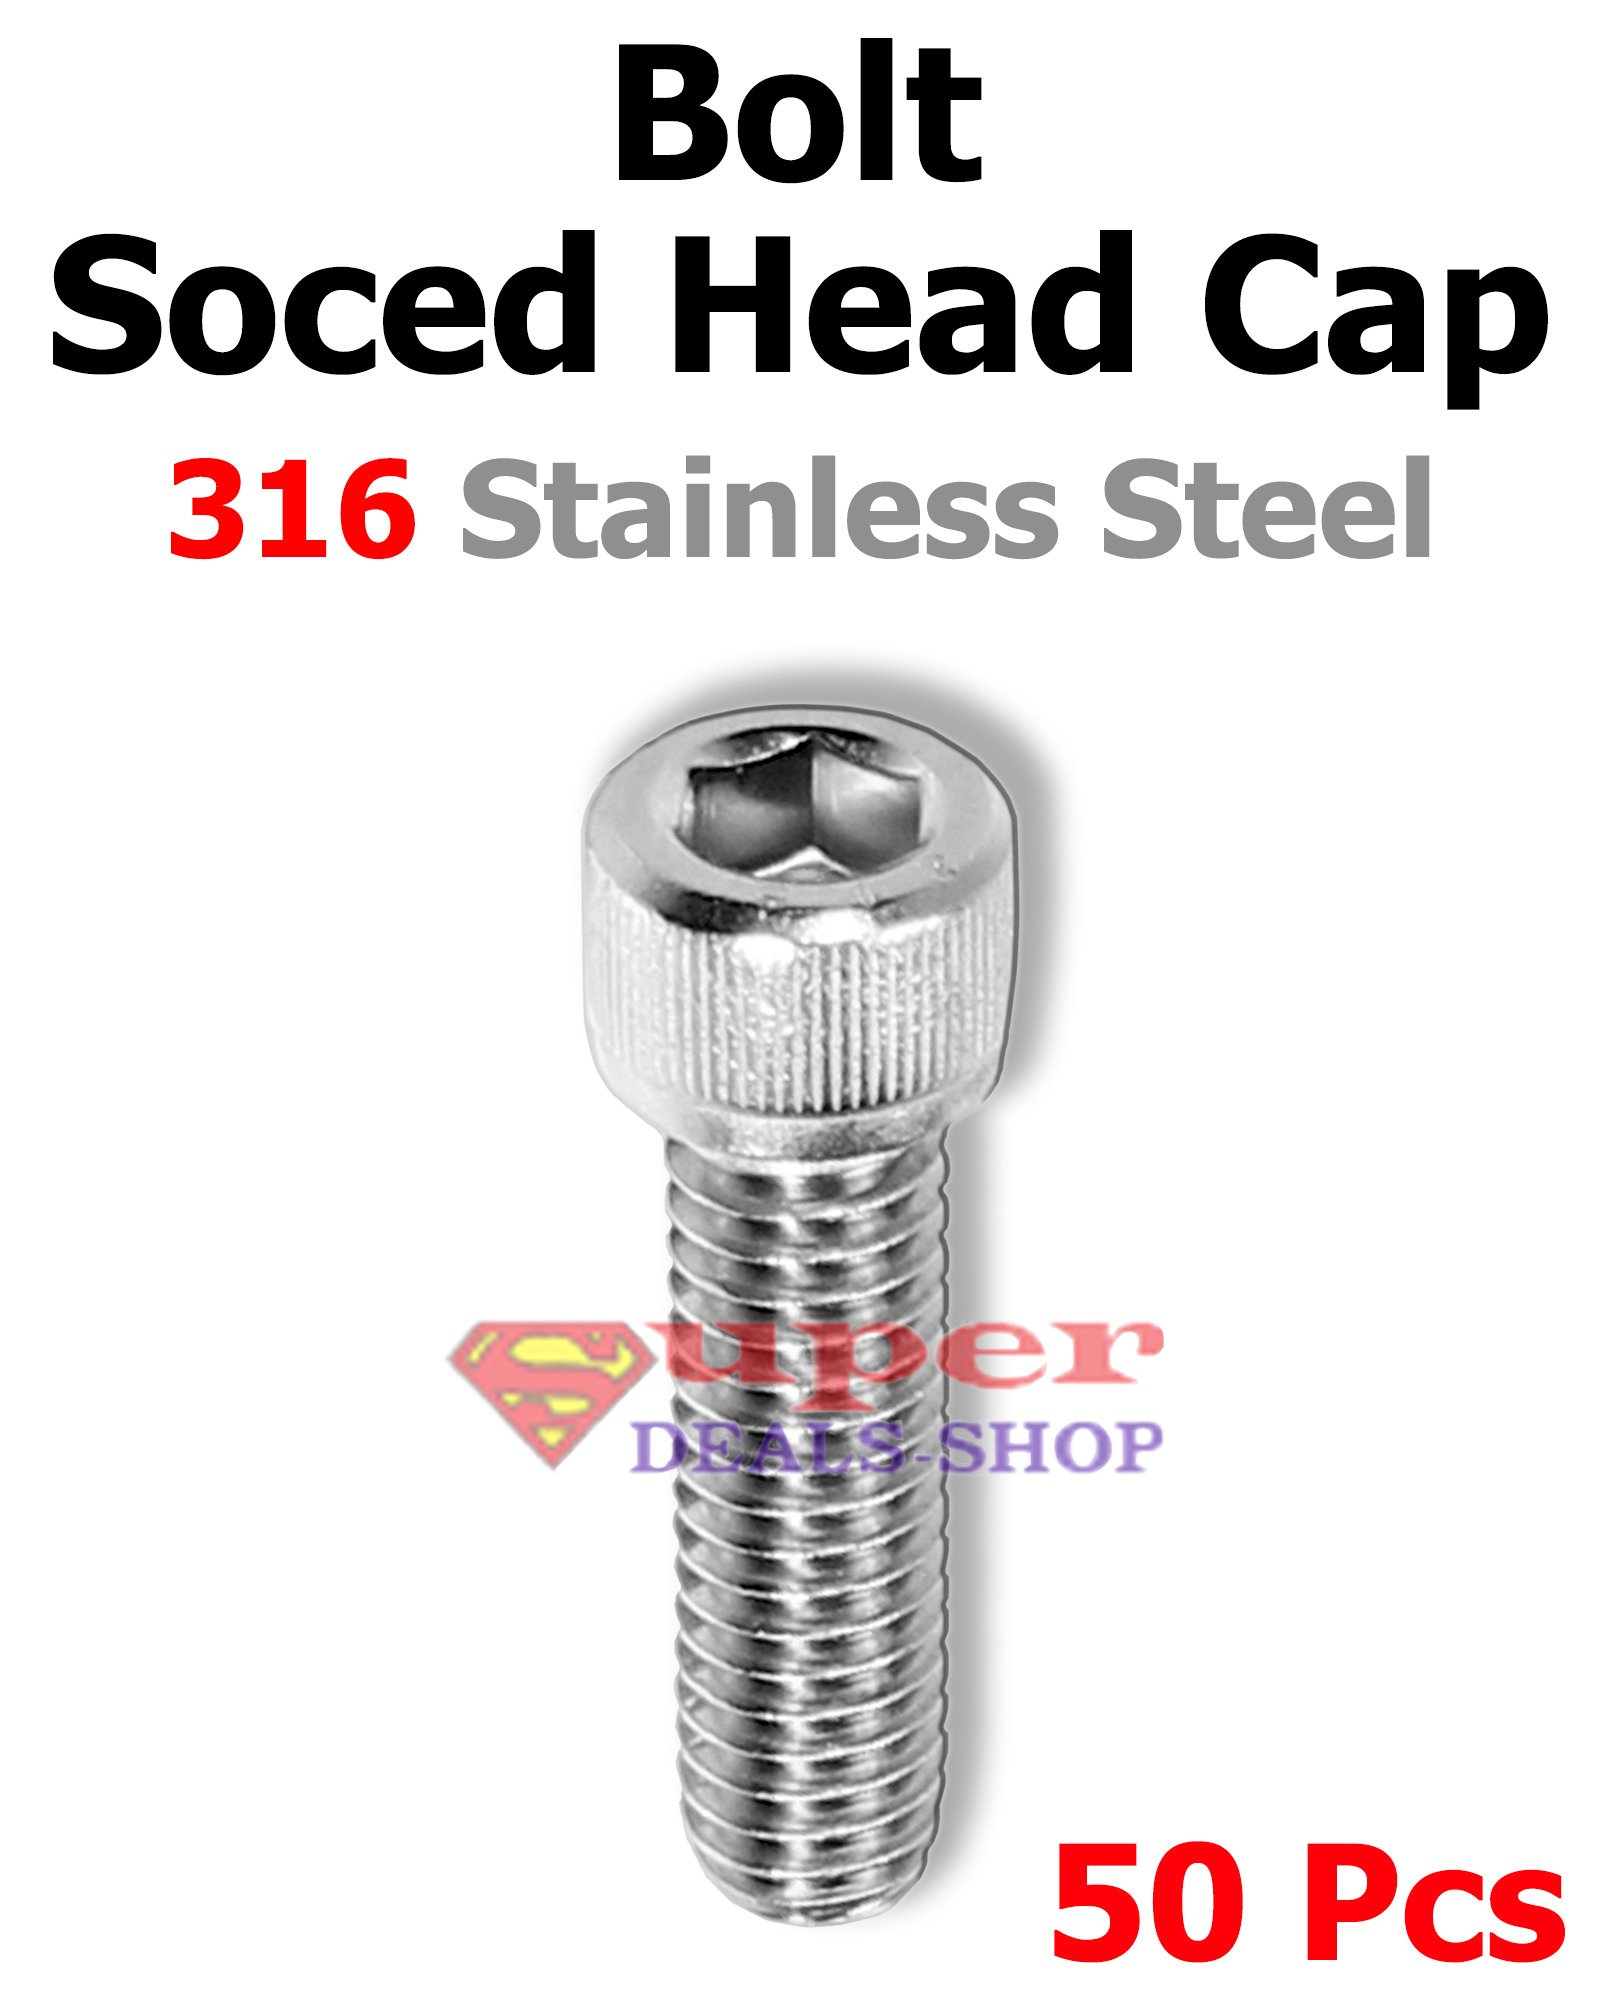 50 Pcs 10-24 x 7/16'' Stainless Steel Marine Grade 316 Socket Head Cap Screws Bolts Right Hand Threads Choose Size/Quantity In Listing Made in US Super-Deals-Shop